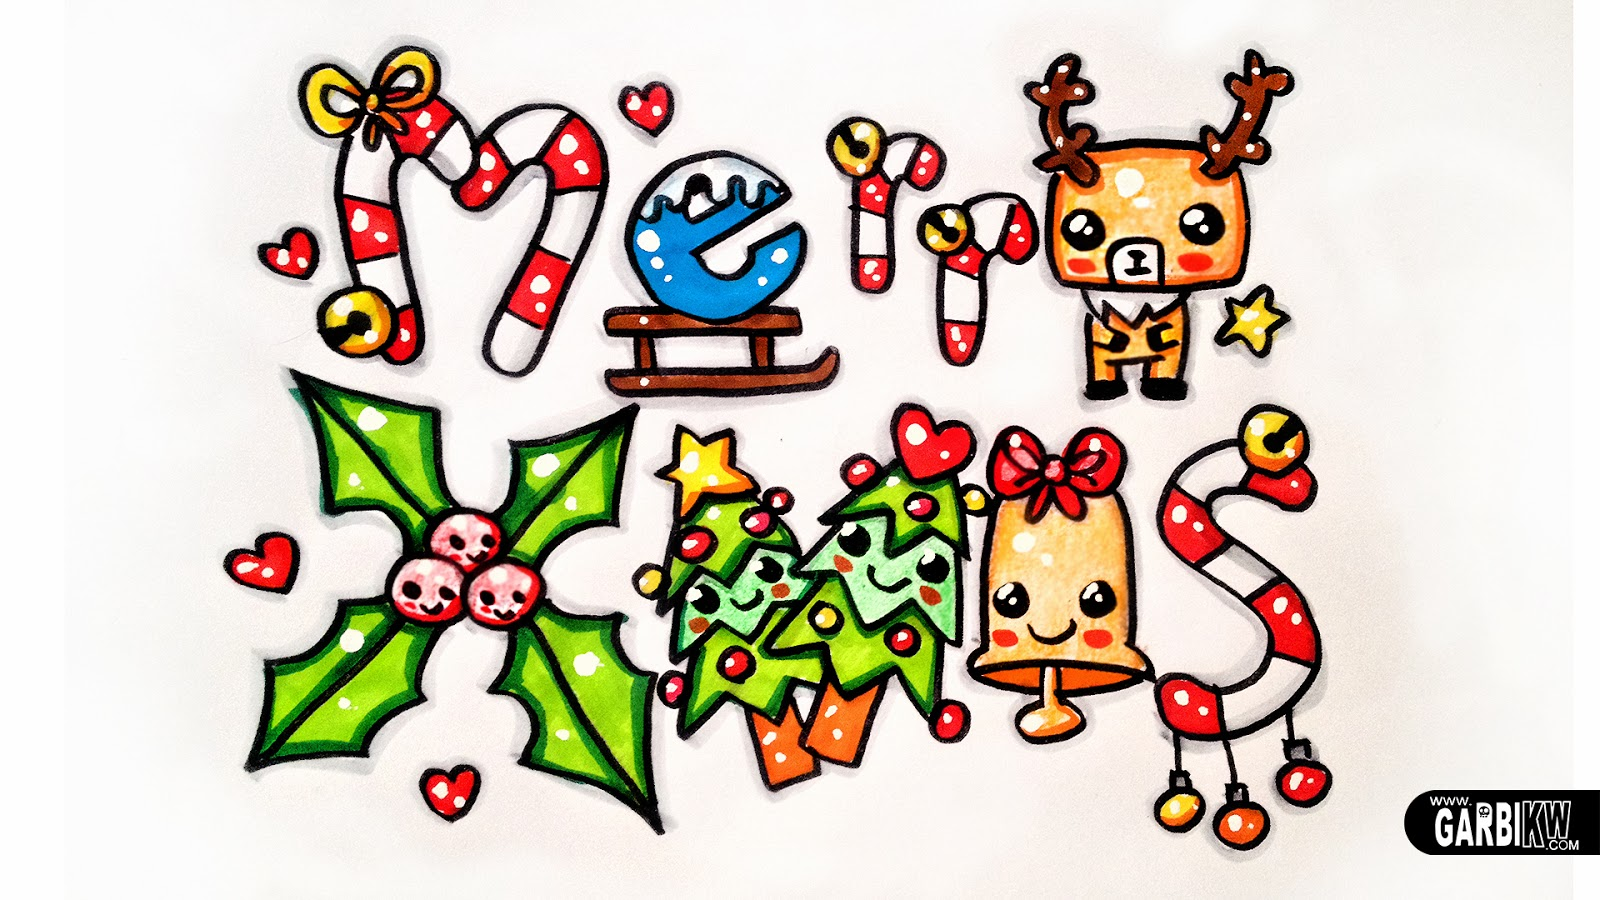 Merry Xmas - How To Draw Cute and Graffiti Letters by Garbi KW ...